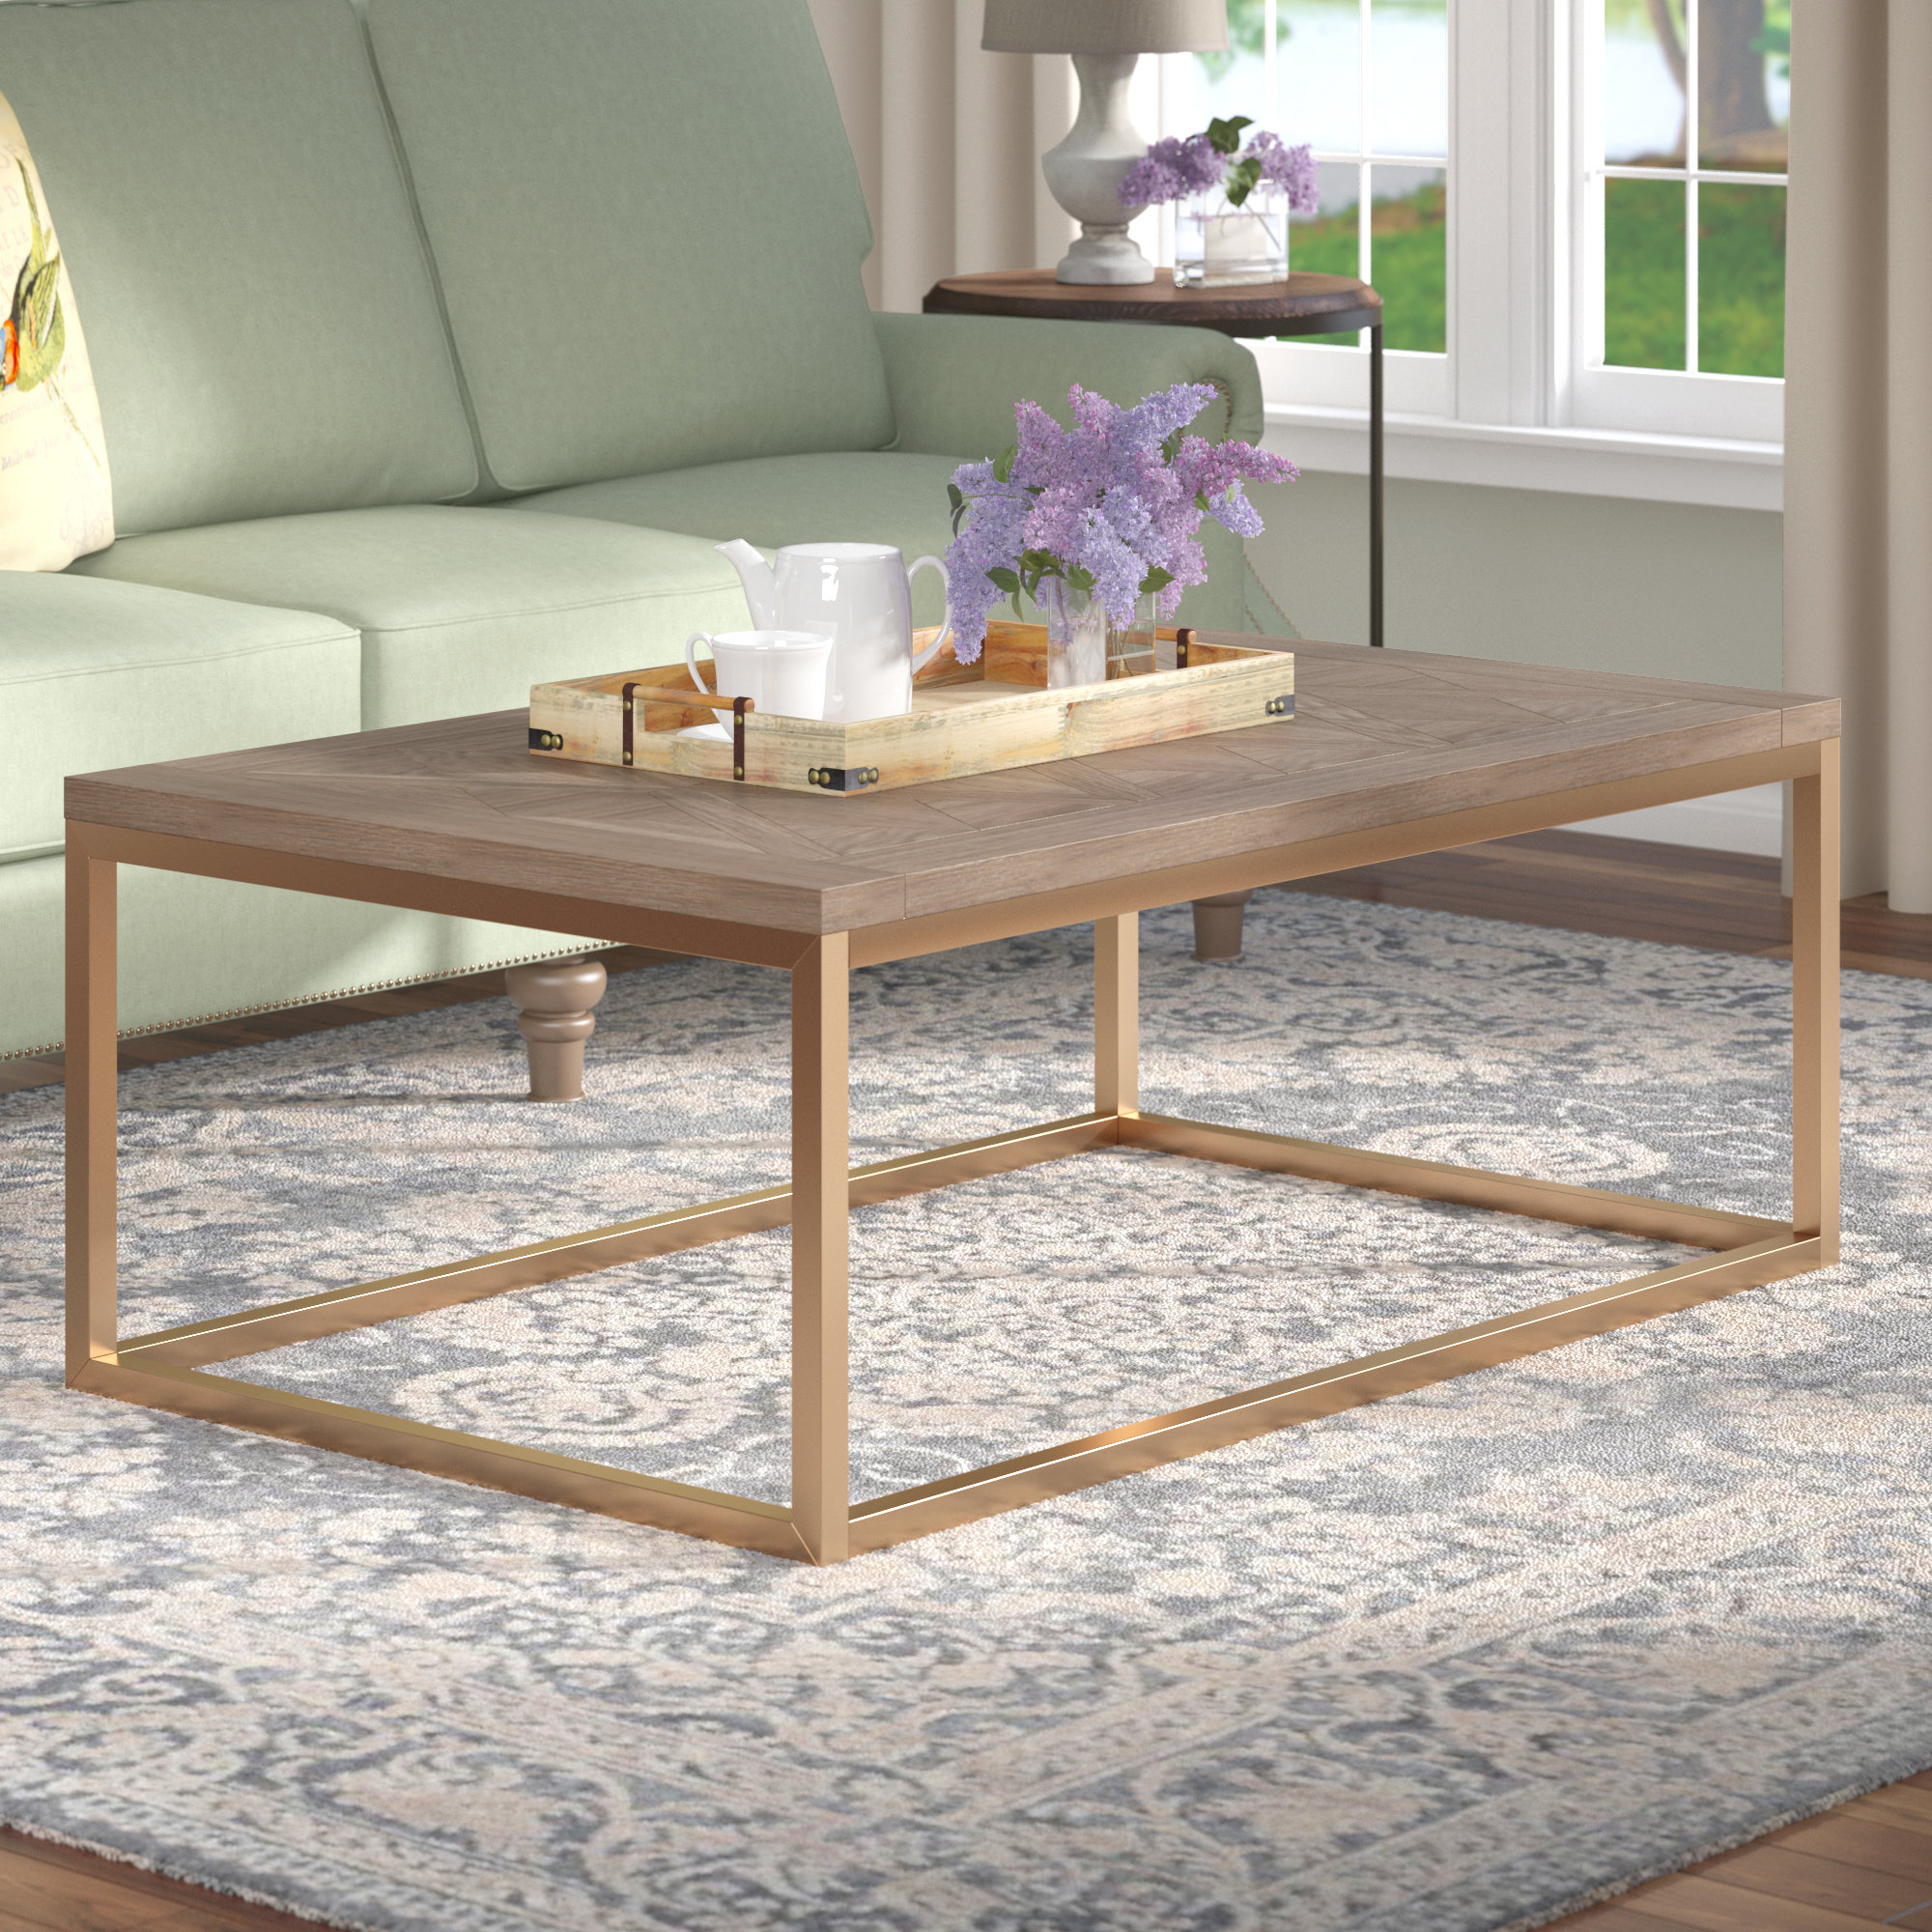 Seneca Lift Top Cocktail Tables In Popular Laurel Foundry Modern Farmhouse Juliana Coffee Table & Reviews (View 14 of 20)